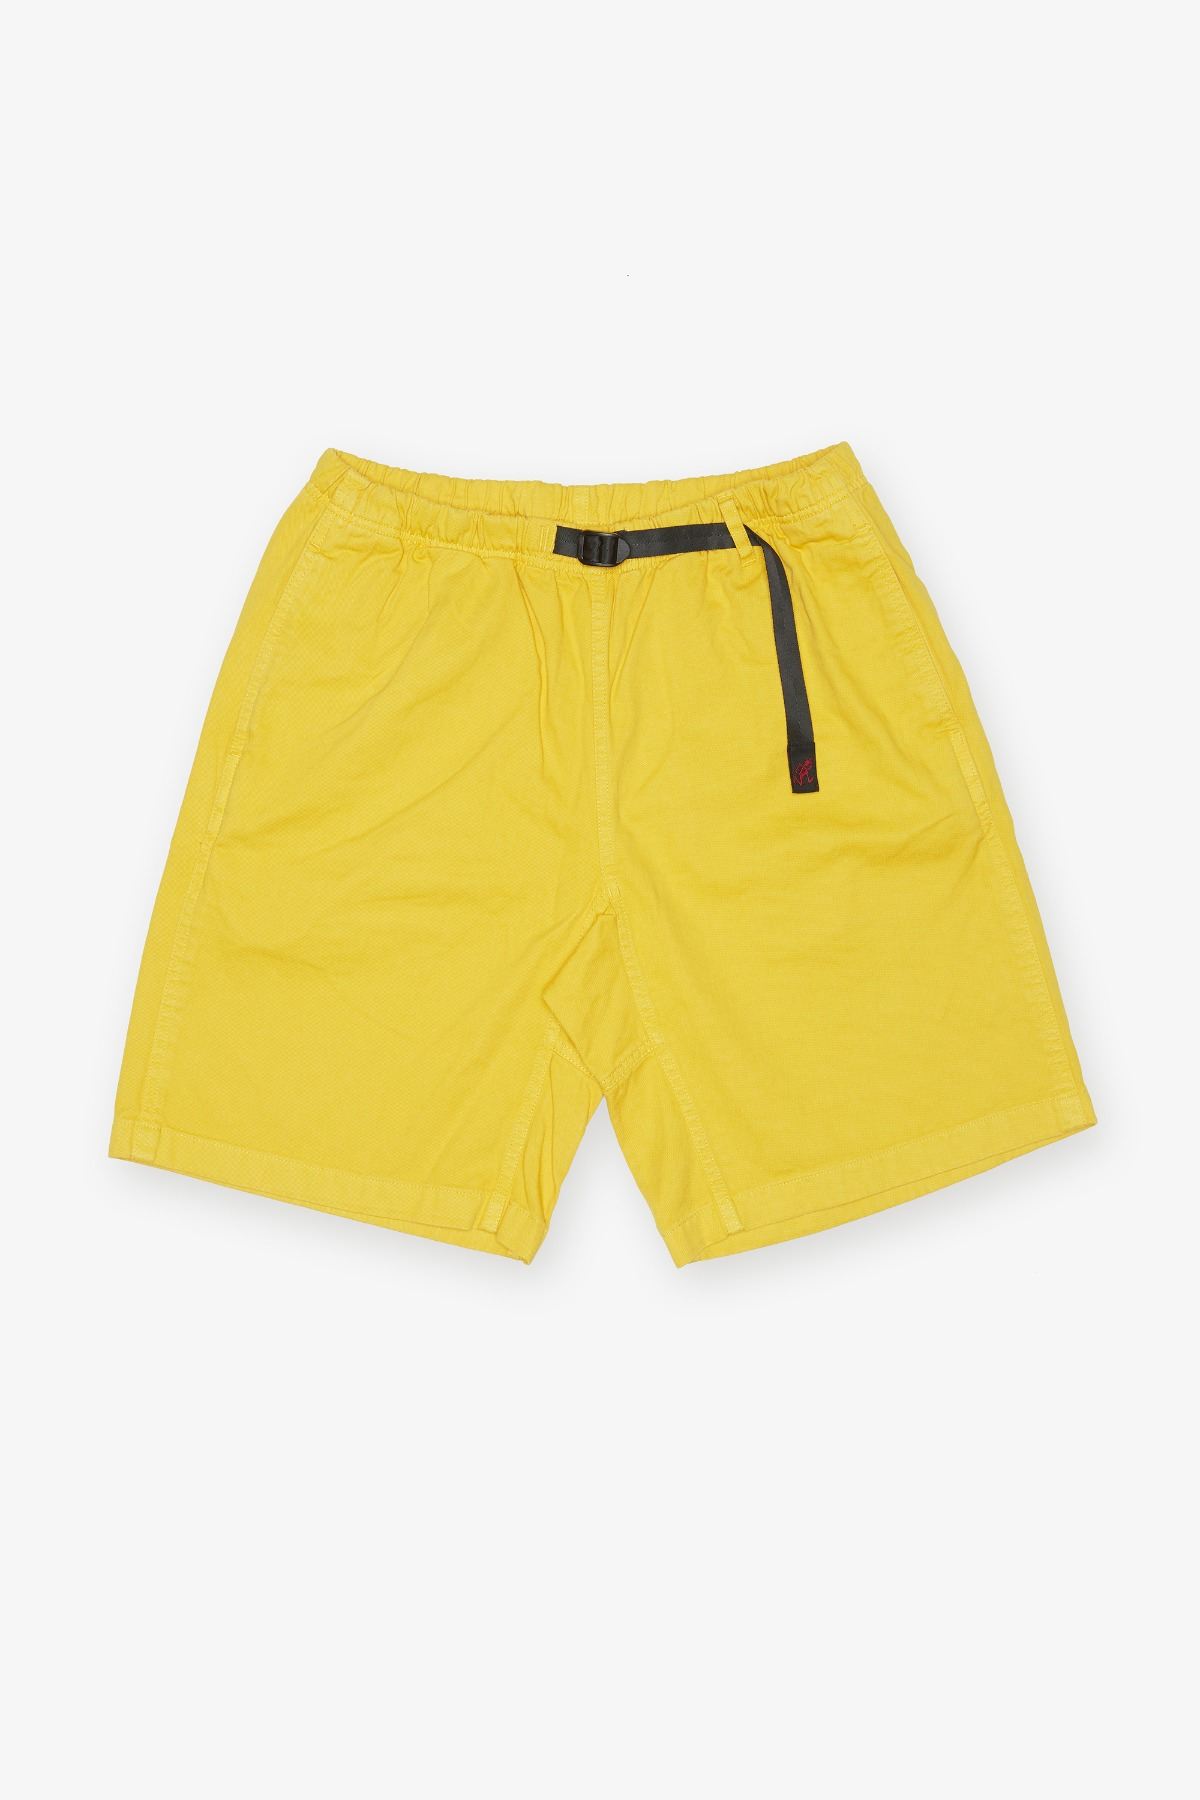 G-SHORTS YELLOW